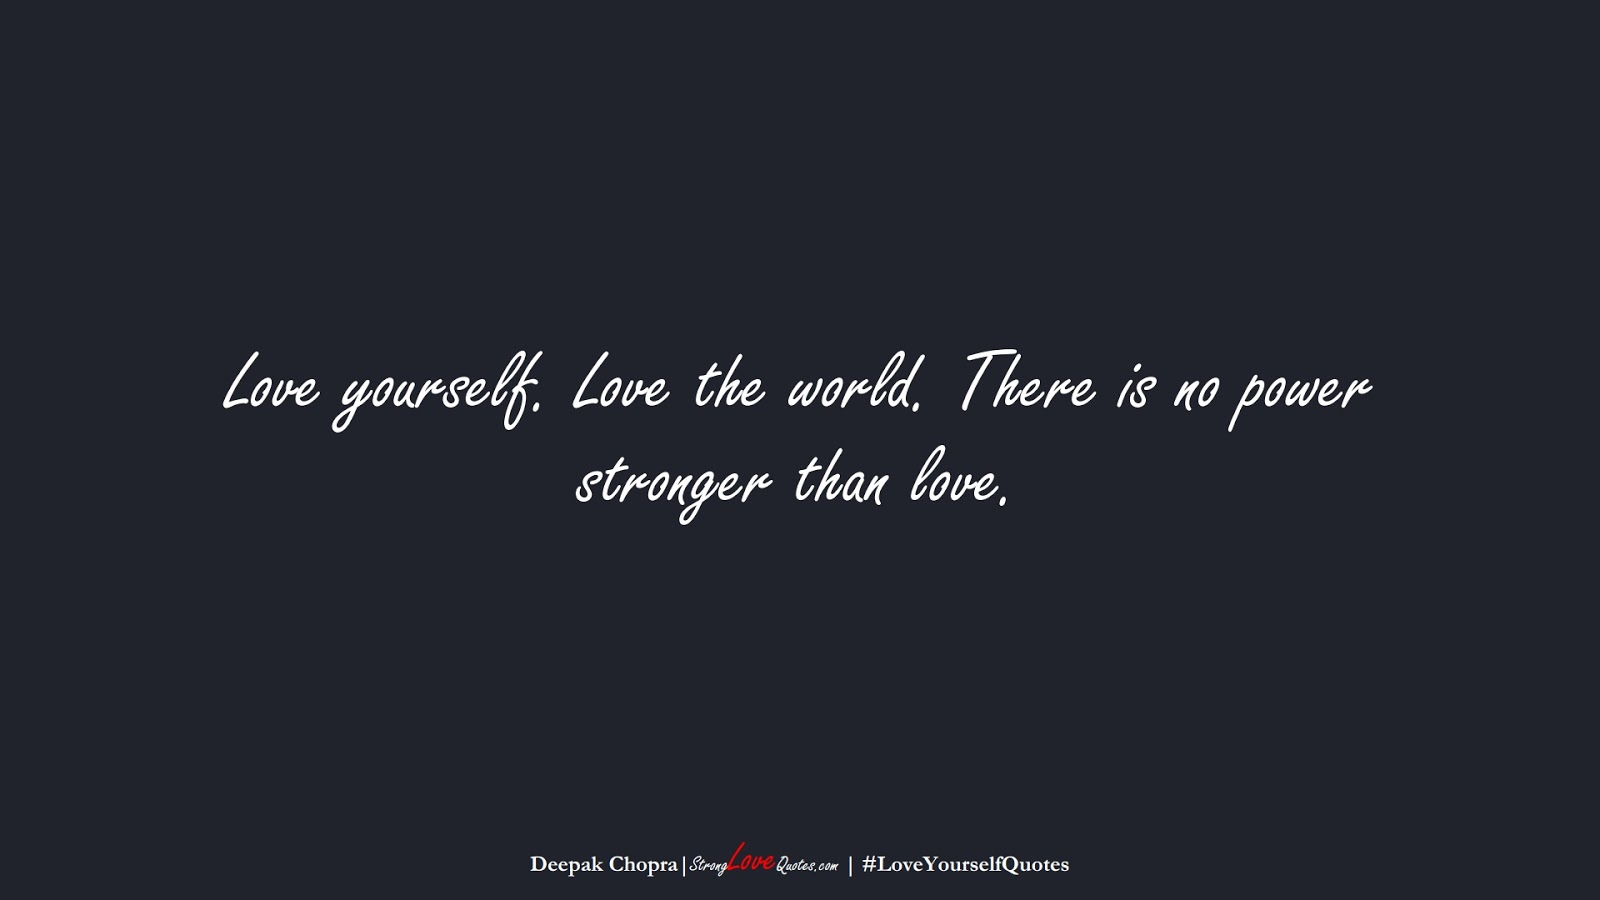 Love yourself. Love the world. There is no power stronger than love. (Deepak Chopra);  #LoveYourselfQuotes